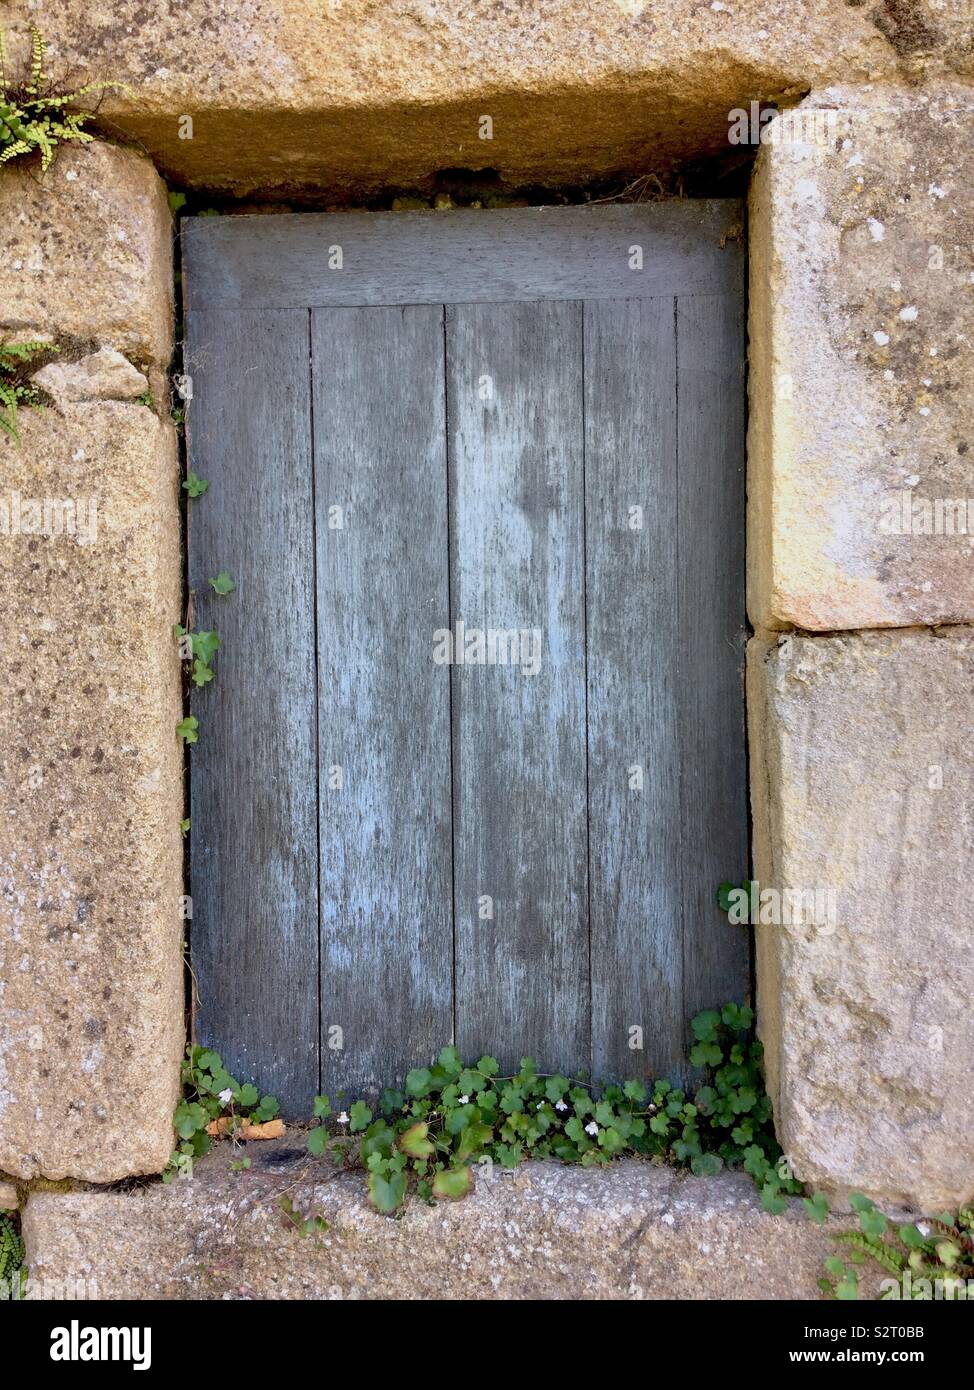 Rustic French window shutter in Dordogne - Stock Image